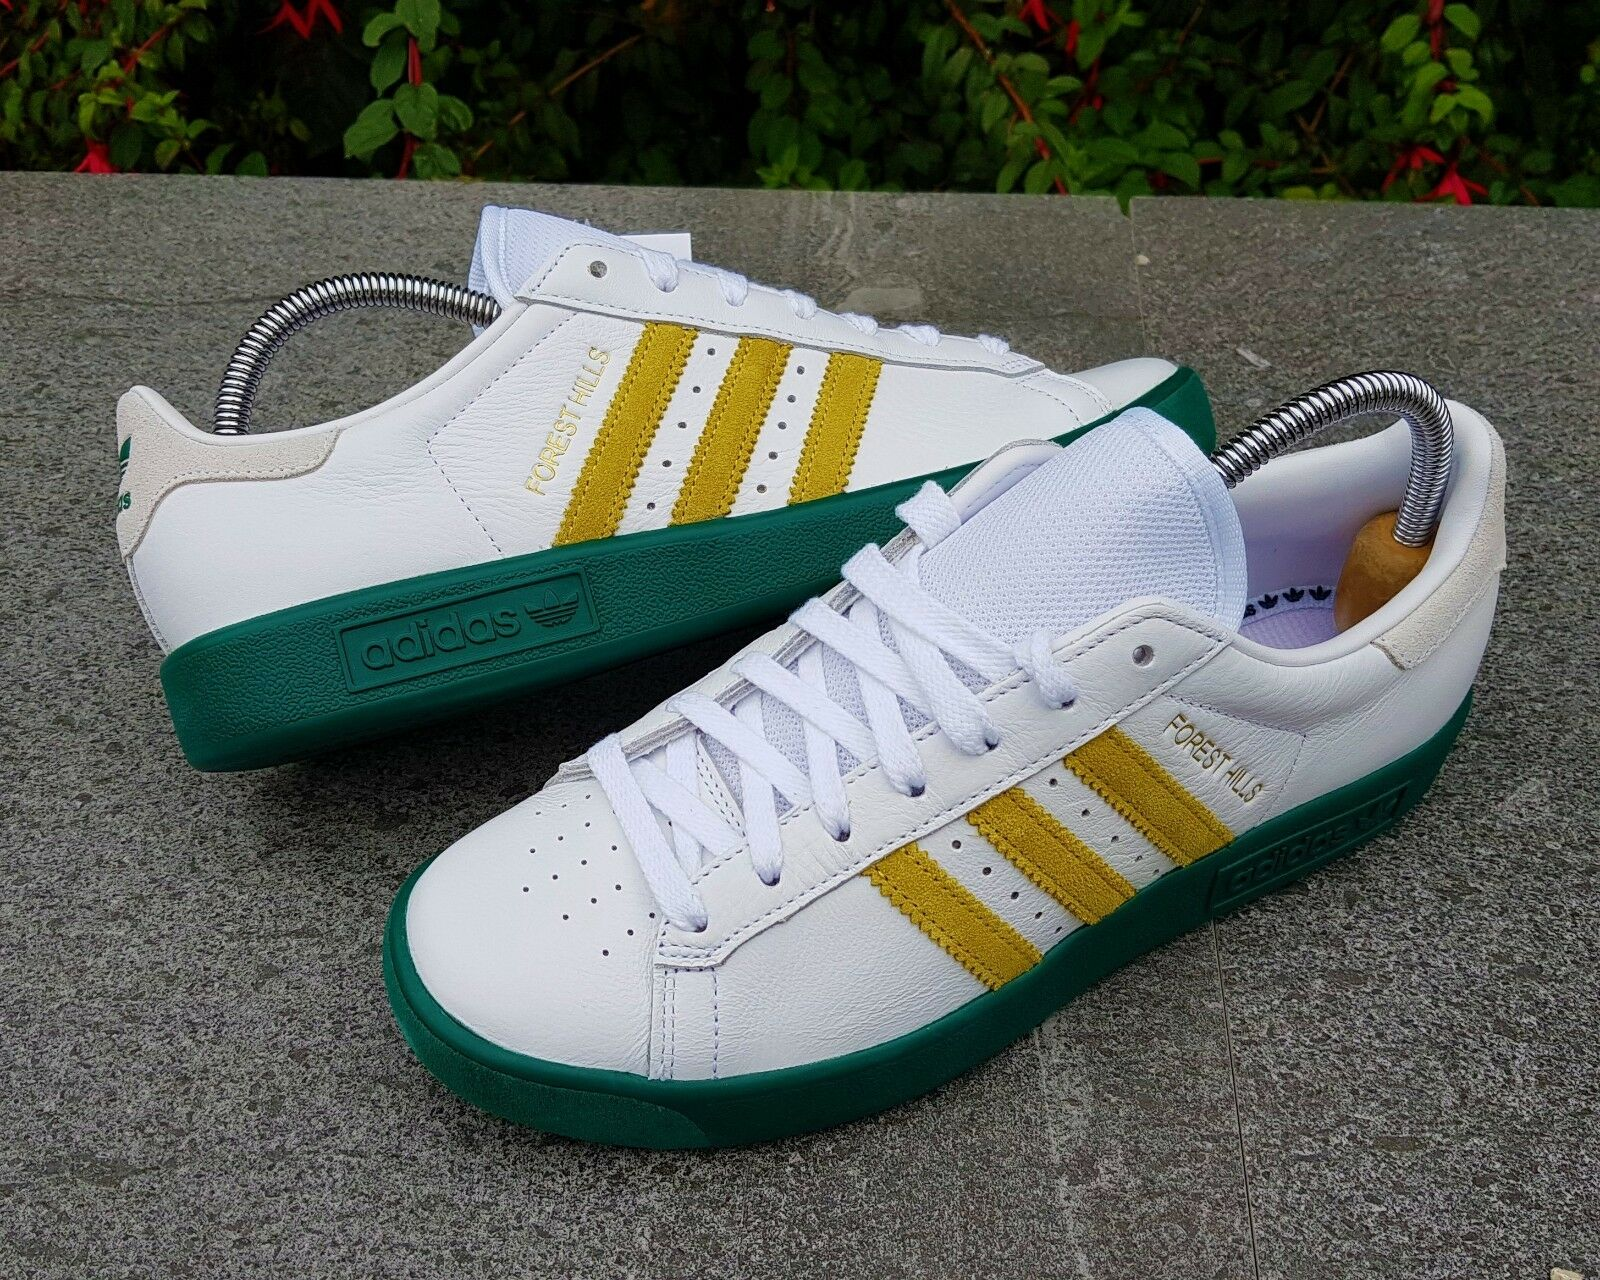 BNWB & auténticos Adidas Originals ® Forest Hills Retro blancoo Zapatillas Uk Talla 8